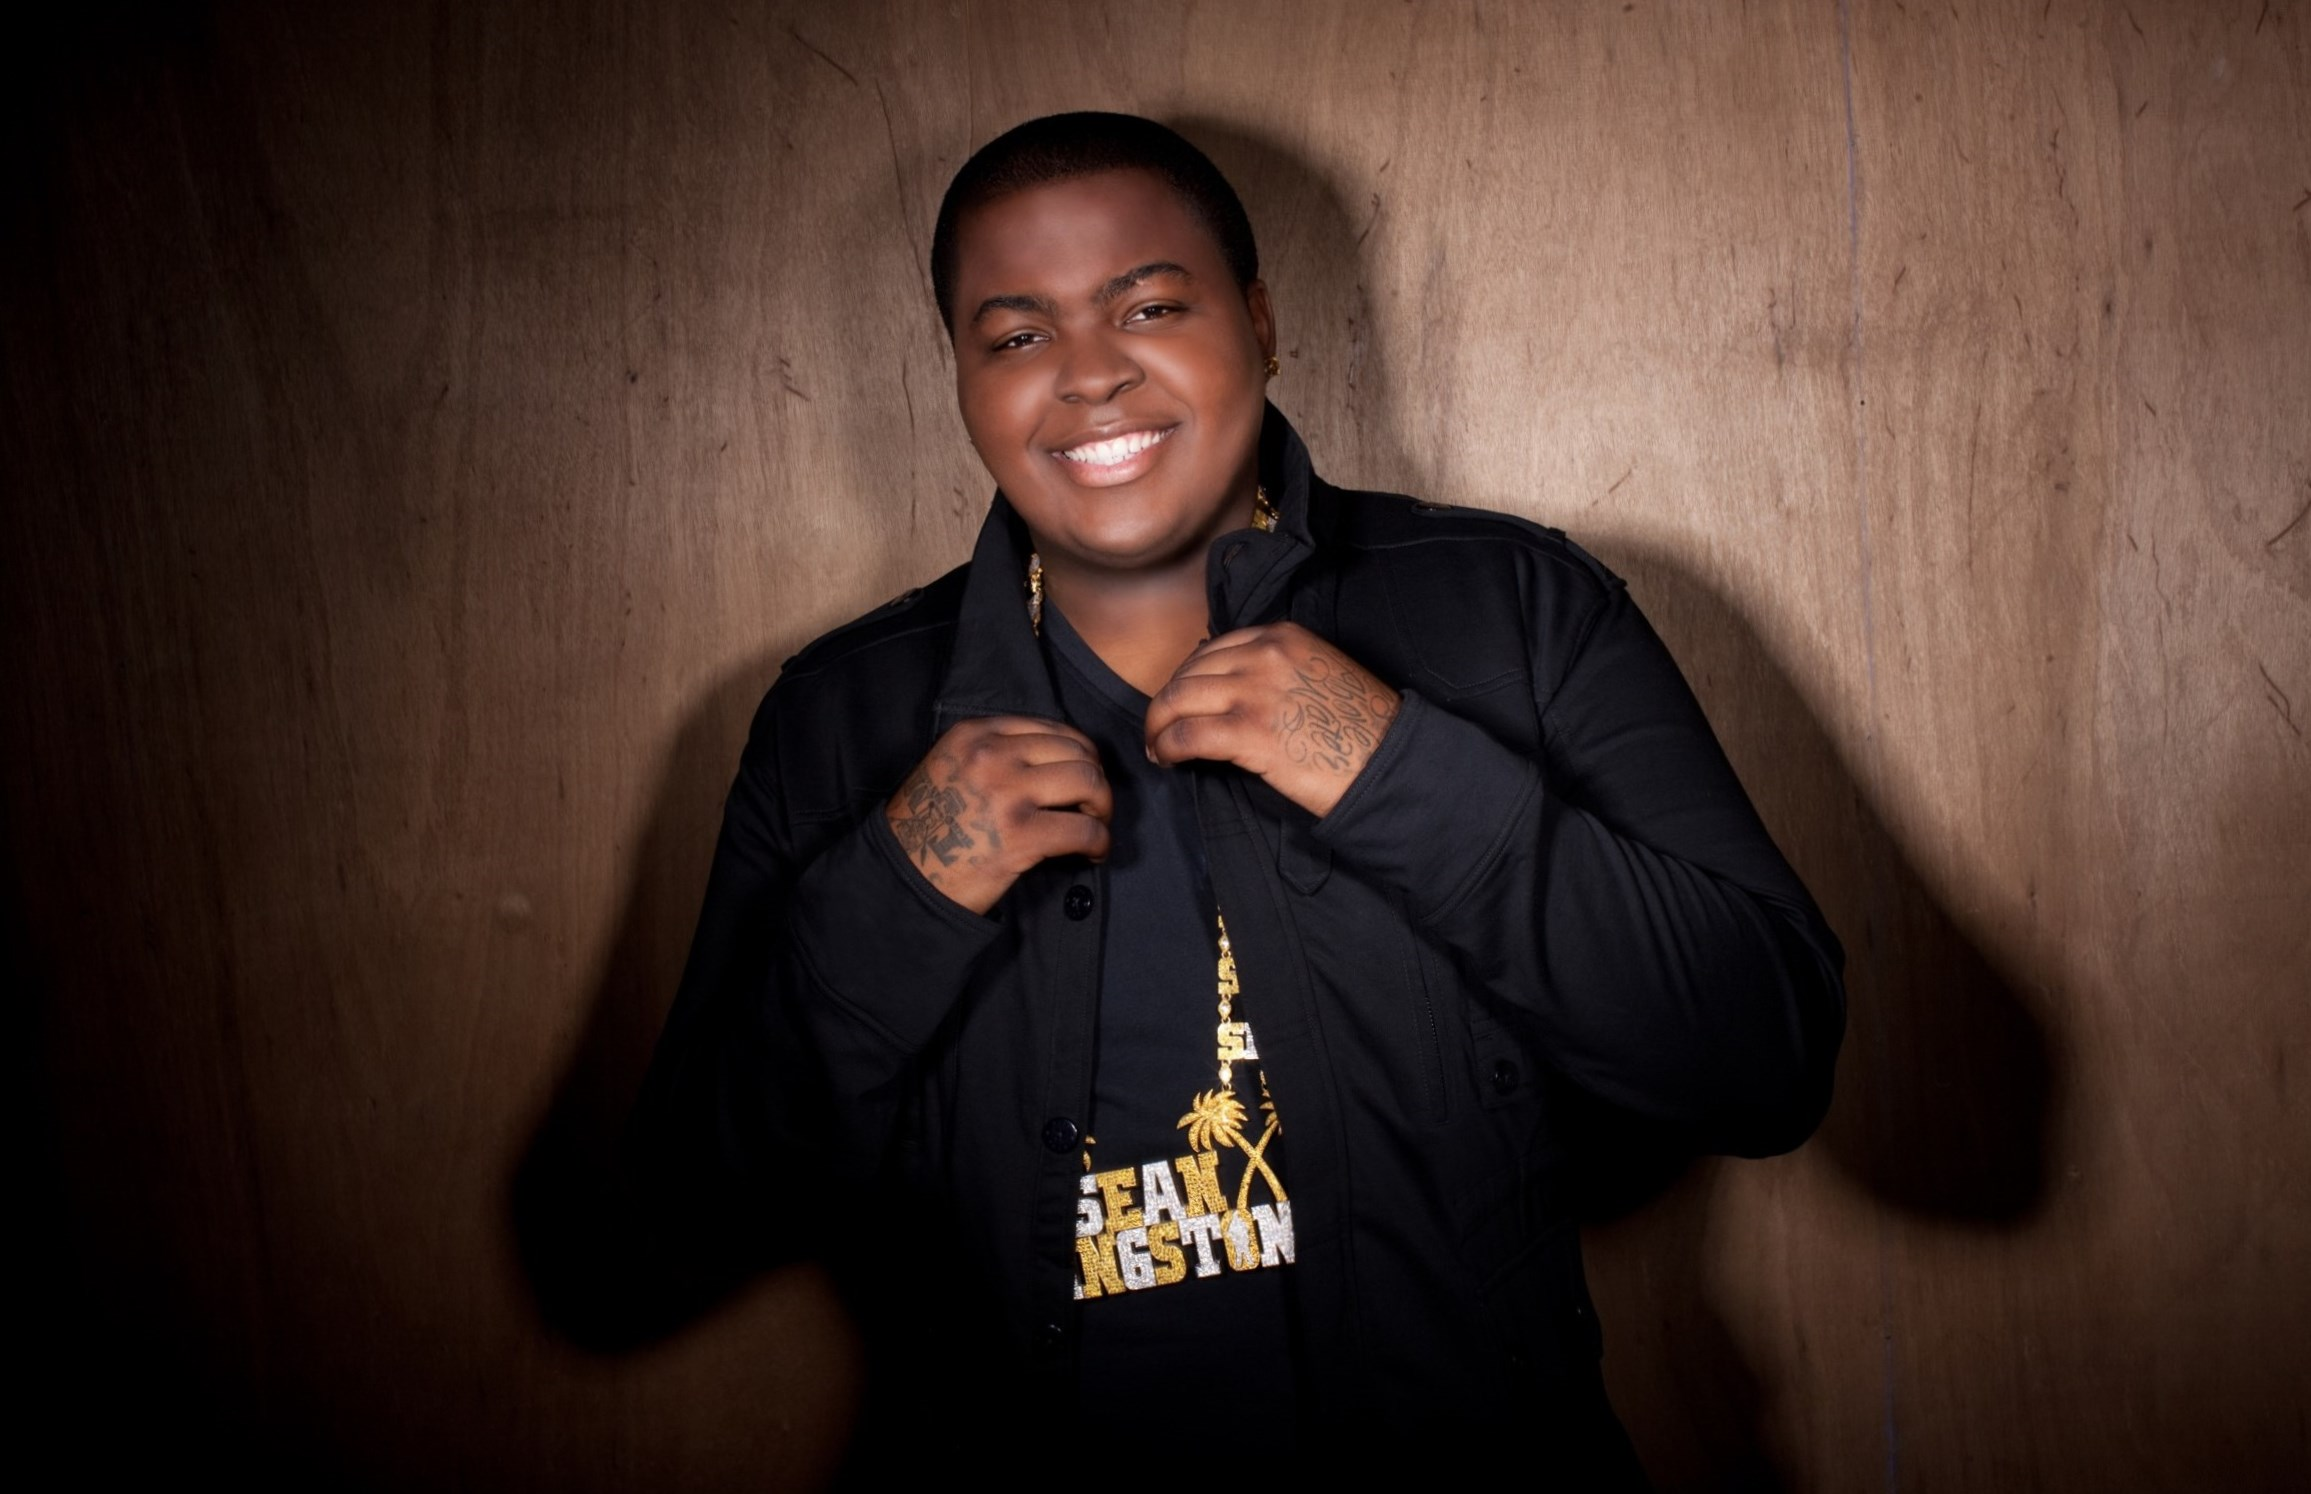 Sean Kingston Weight Height And Age We Know It All